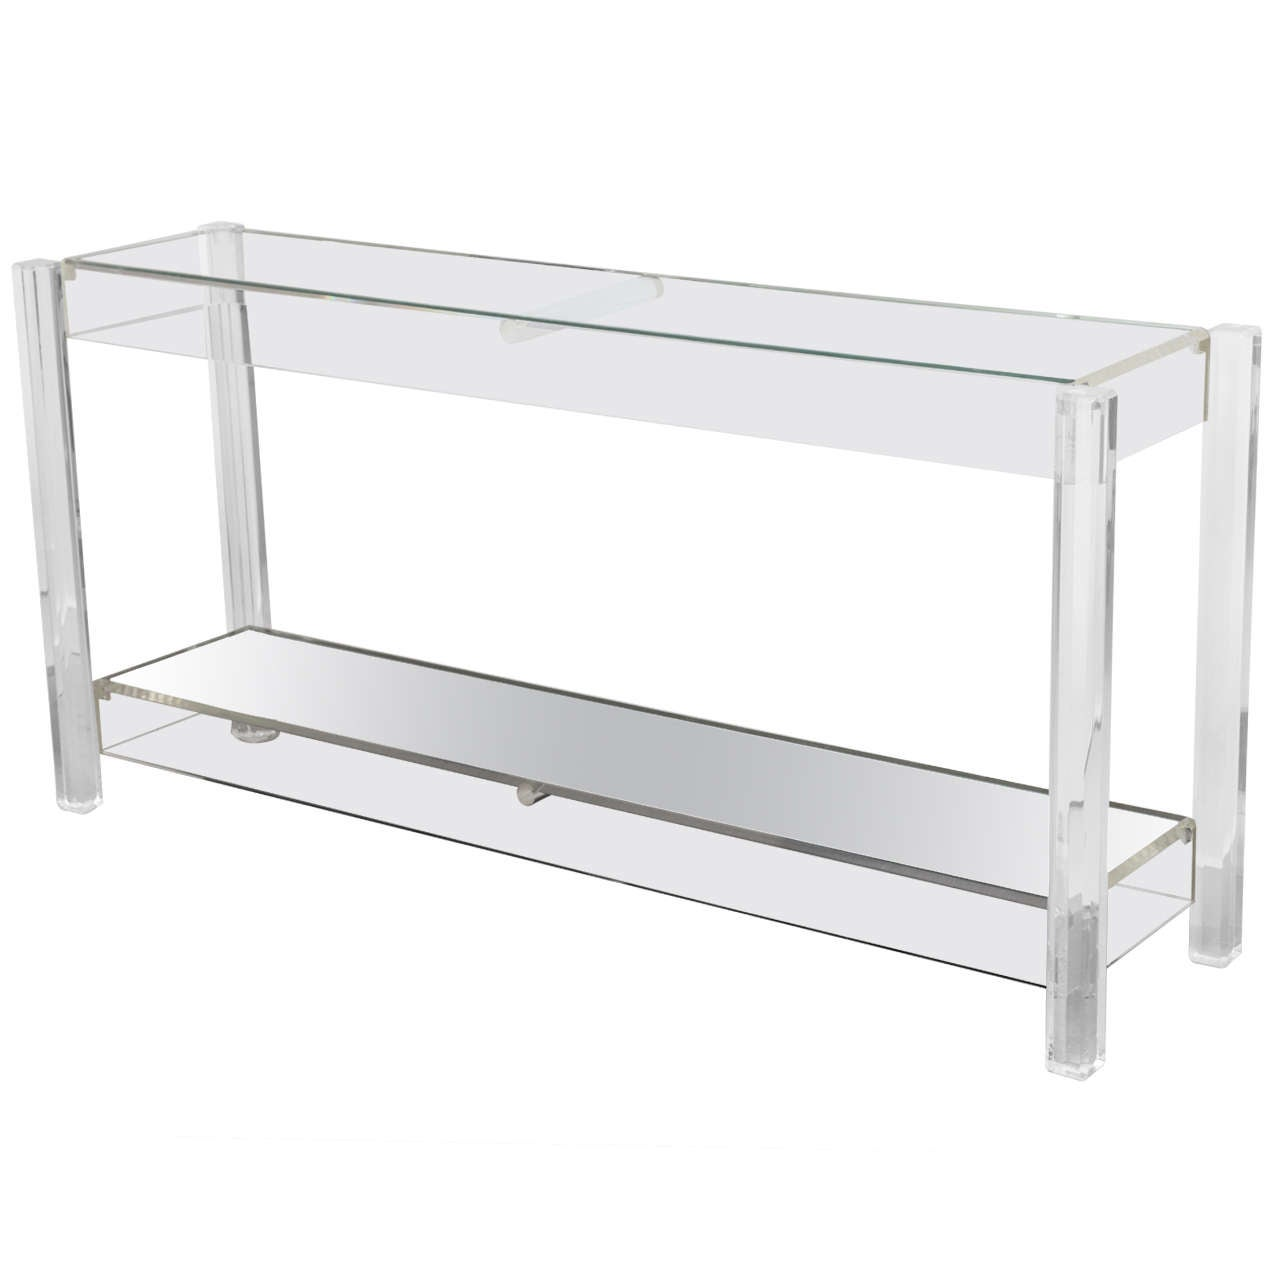 Lucite sofa table vintage lucite console table at 1stdibs for Small acrylic console table